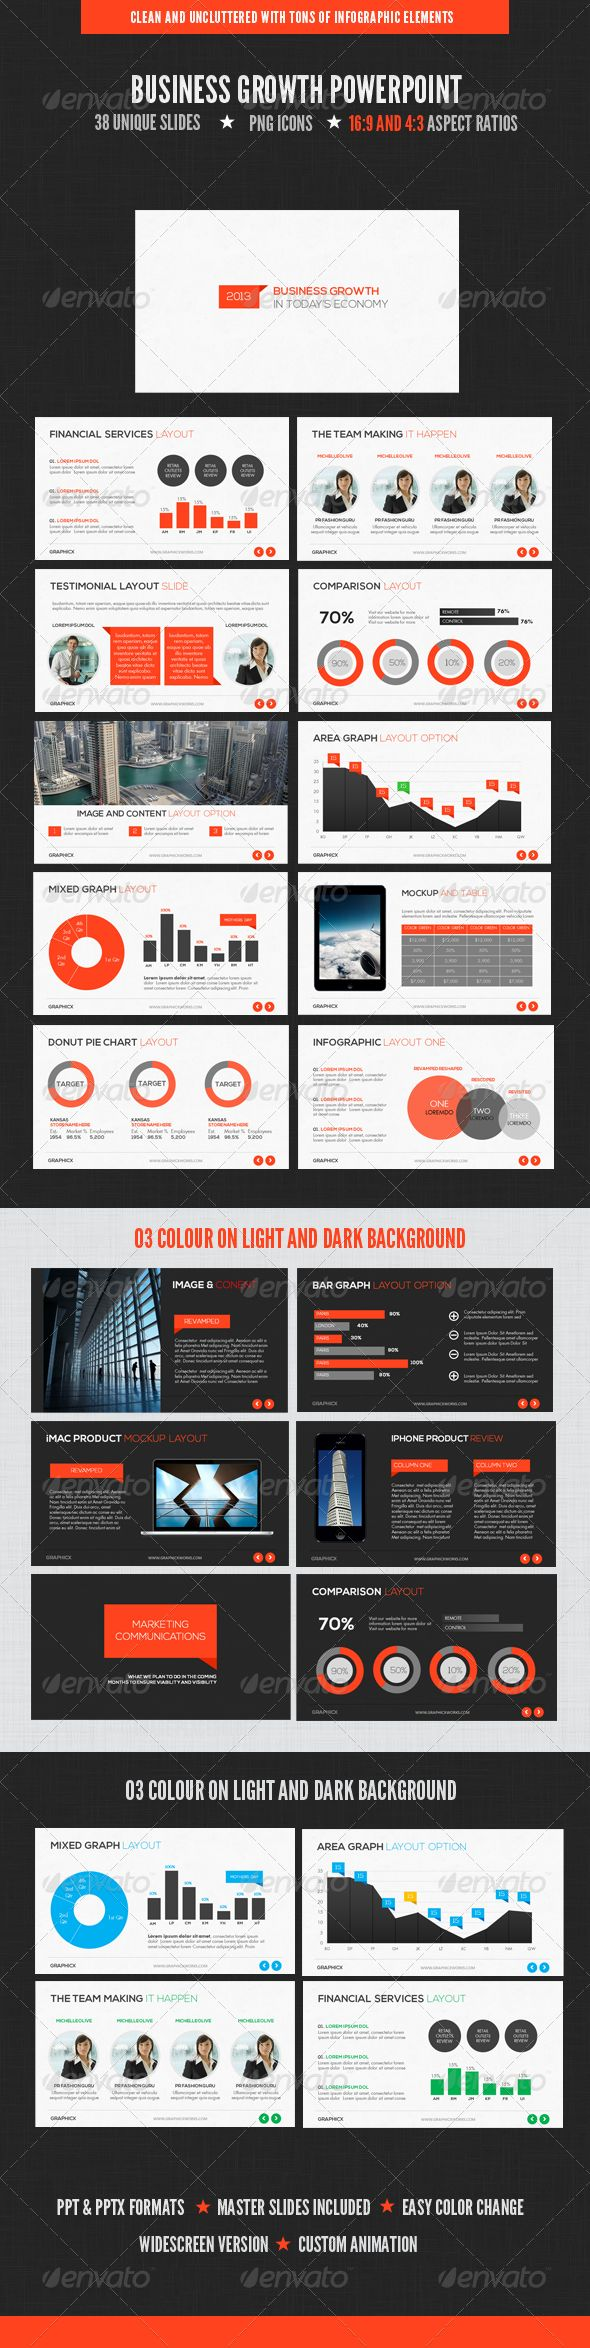 Business Growth Powerpoint - Powerpoint Templates Presentation Templates